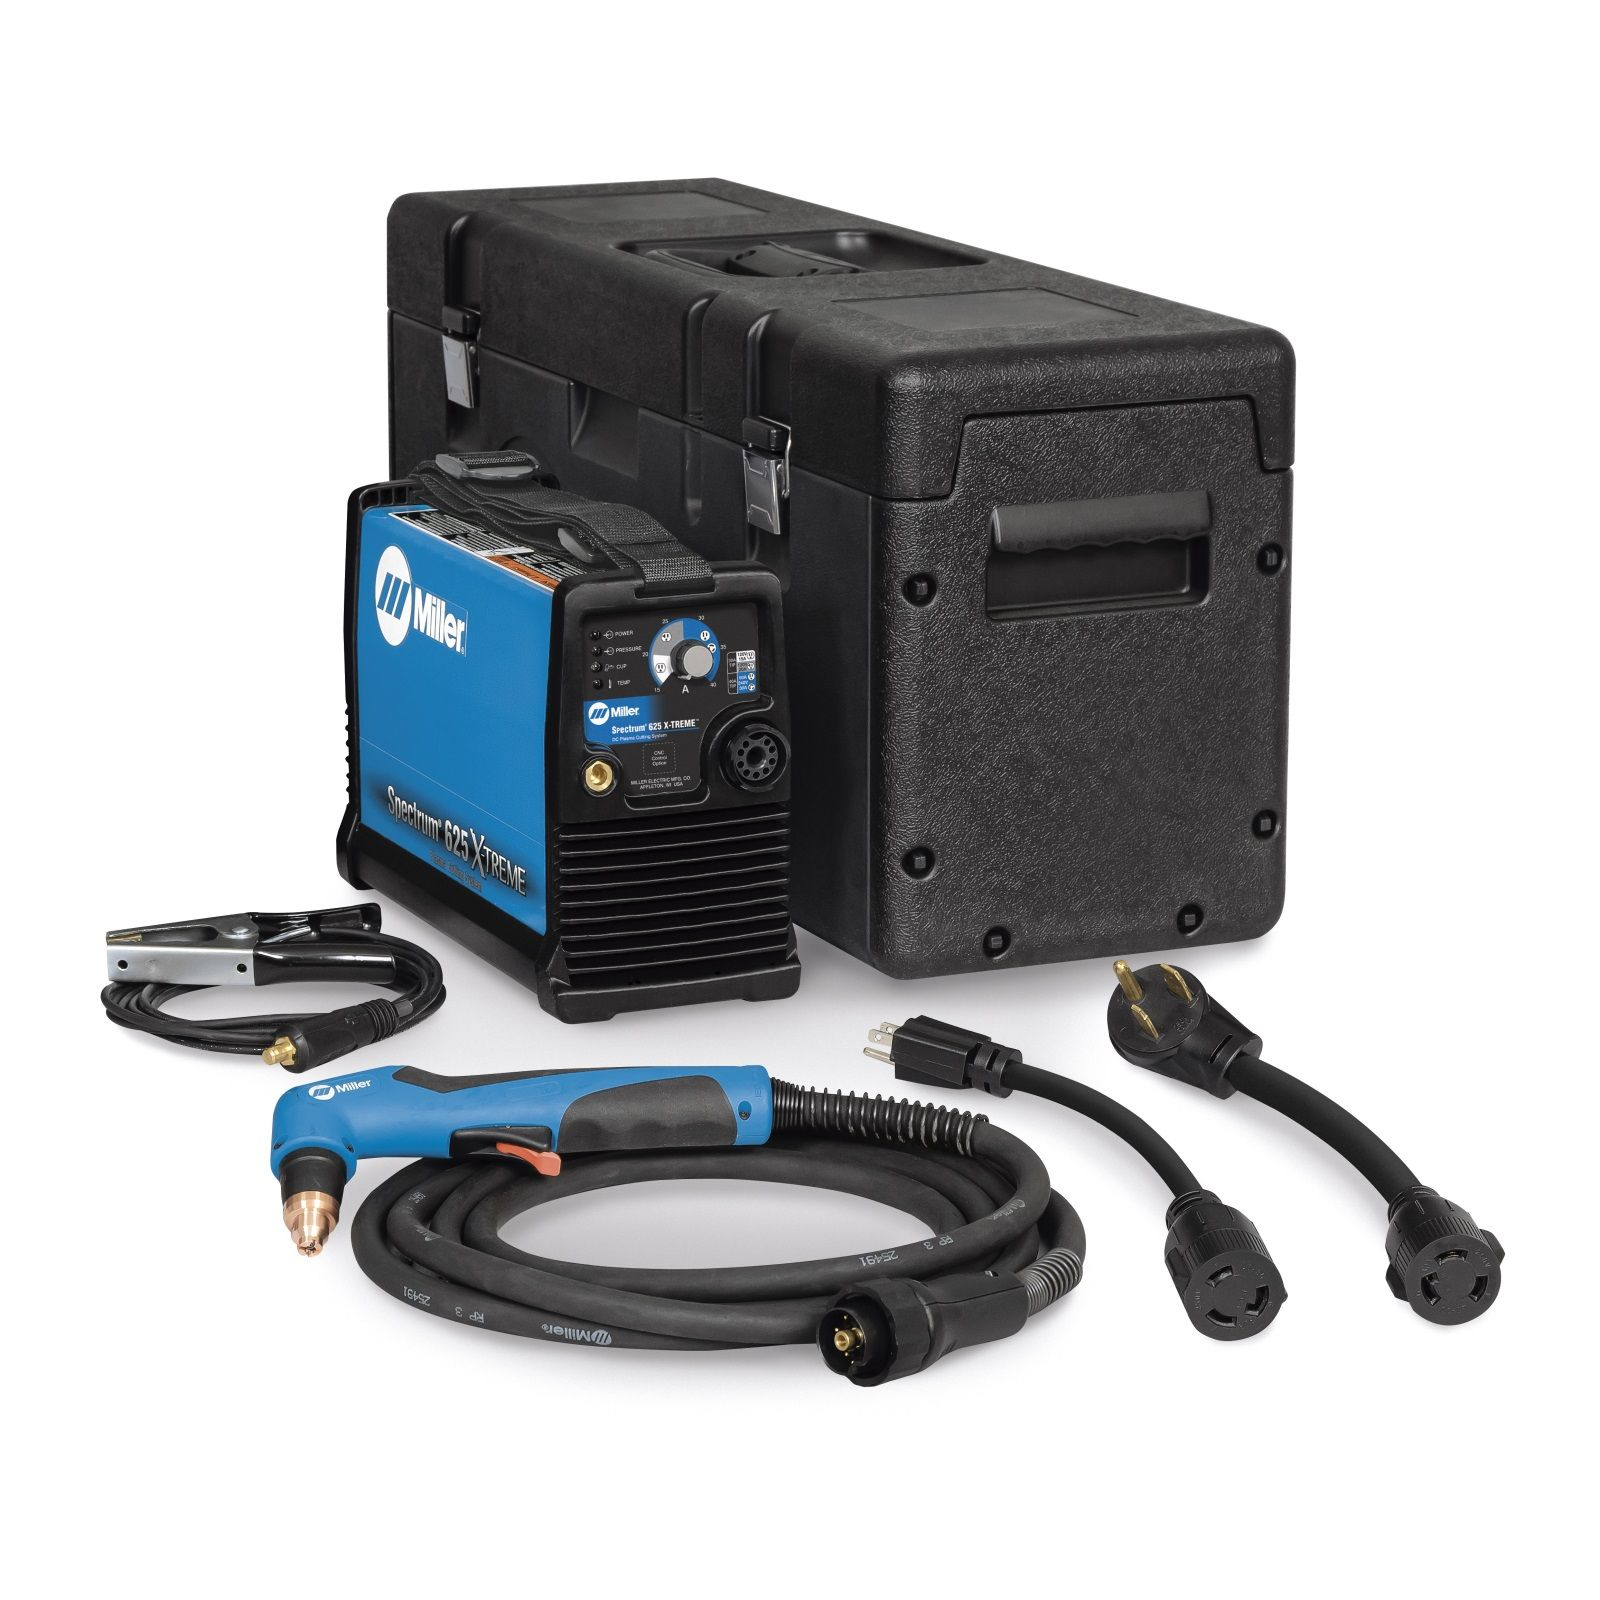 Miller Spectrum 625 X-Treme Plasma Cutter with 20 ft. Torch (907579001)